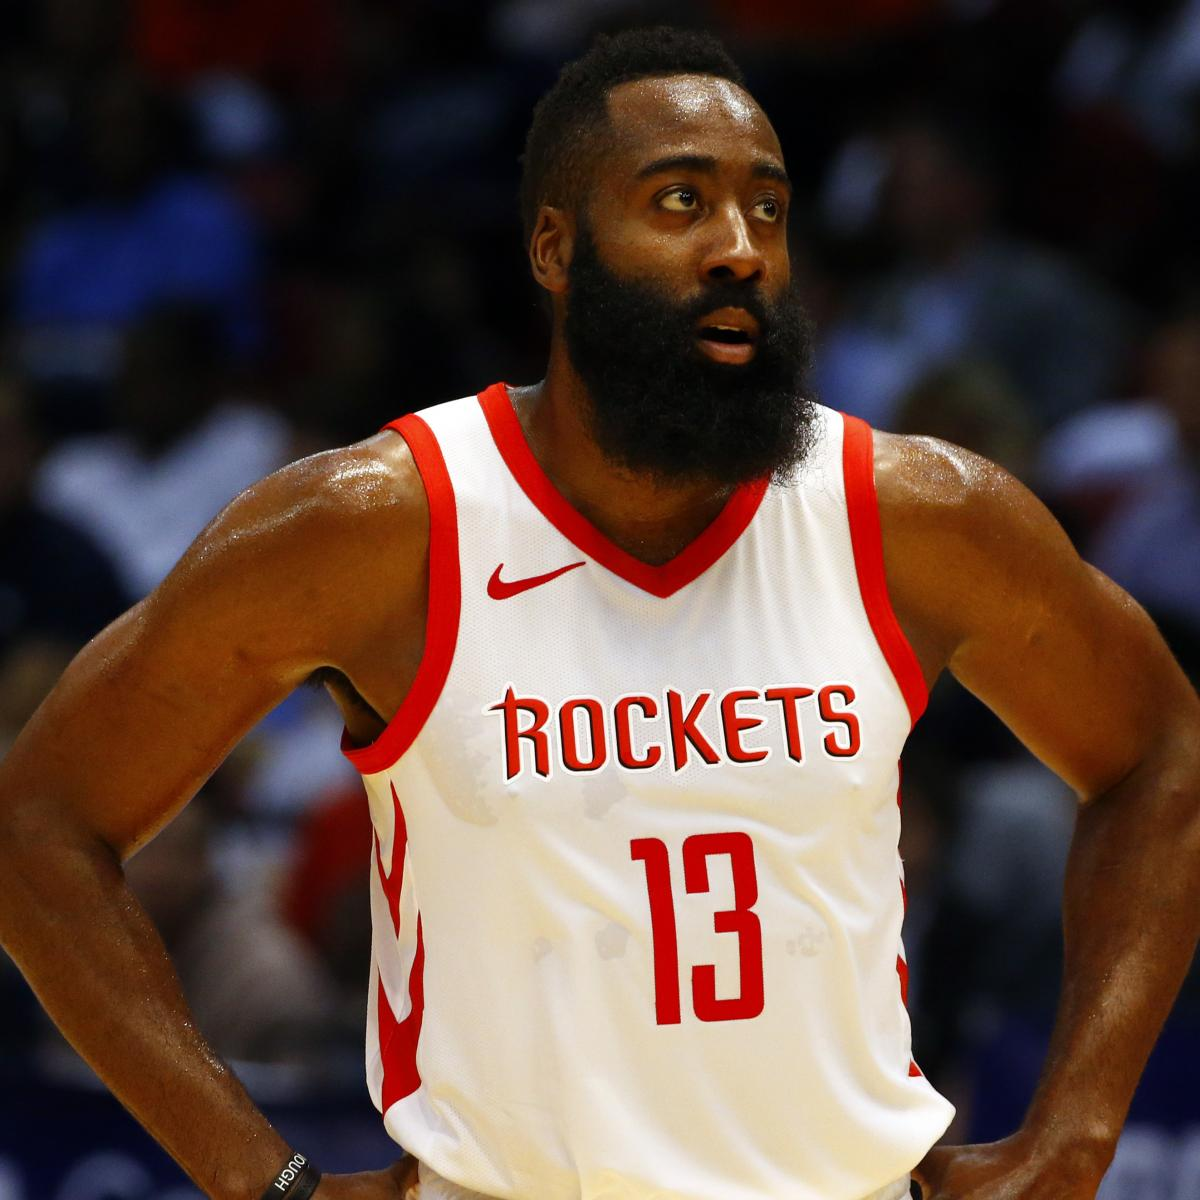 James Harden Latest News: Rockets' James Harden Out Vs. Warriors With Neck Injury